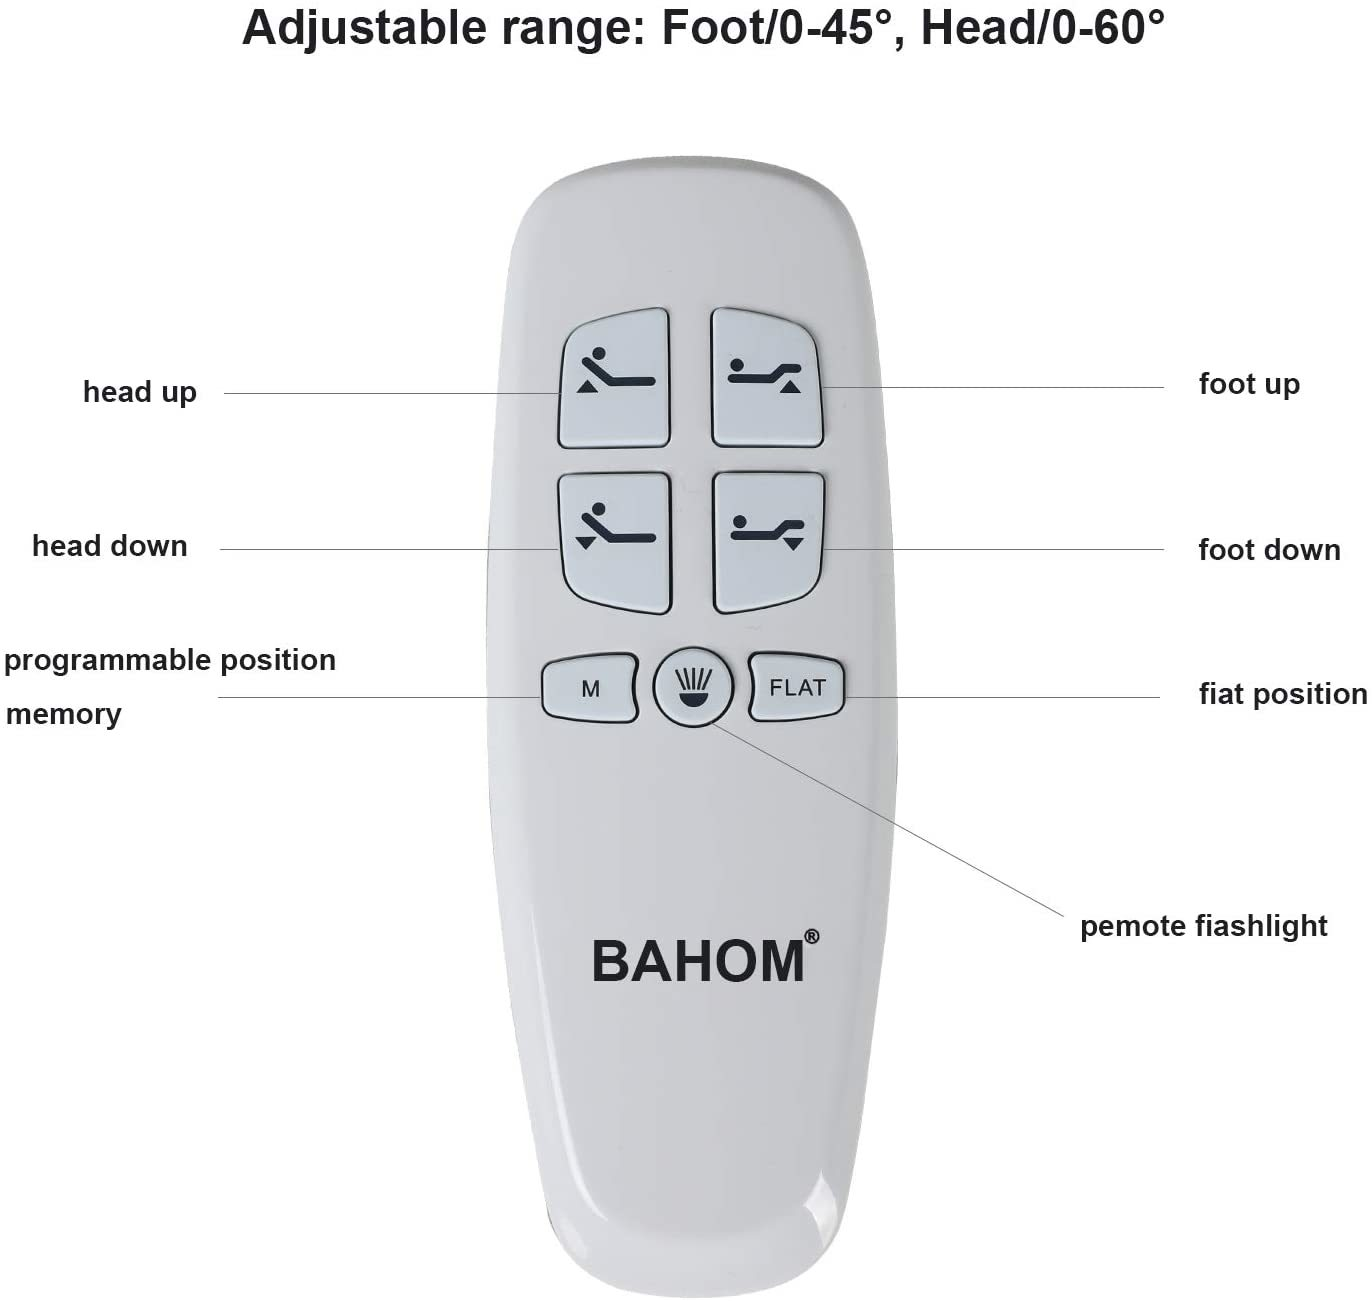 BAHOM Adjustable Bed Review - Remote Control